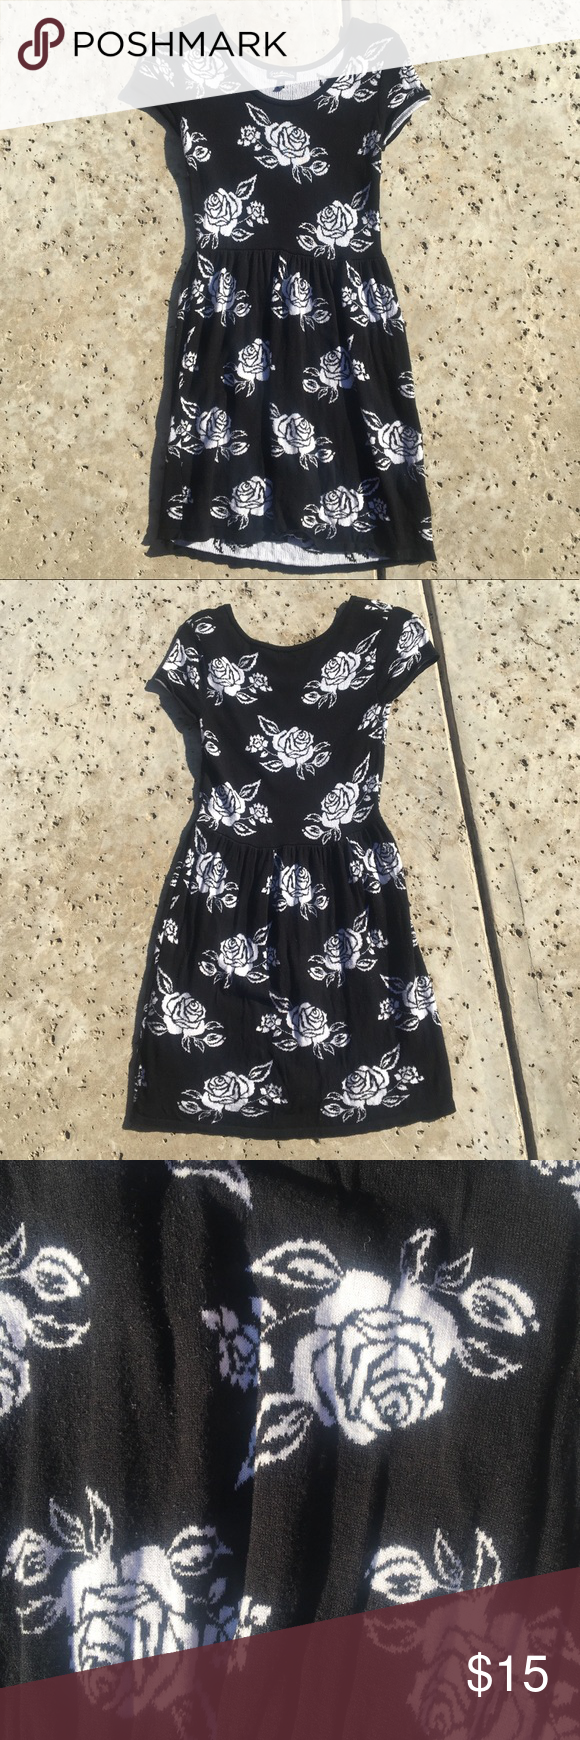 Black u white rose dress